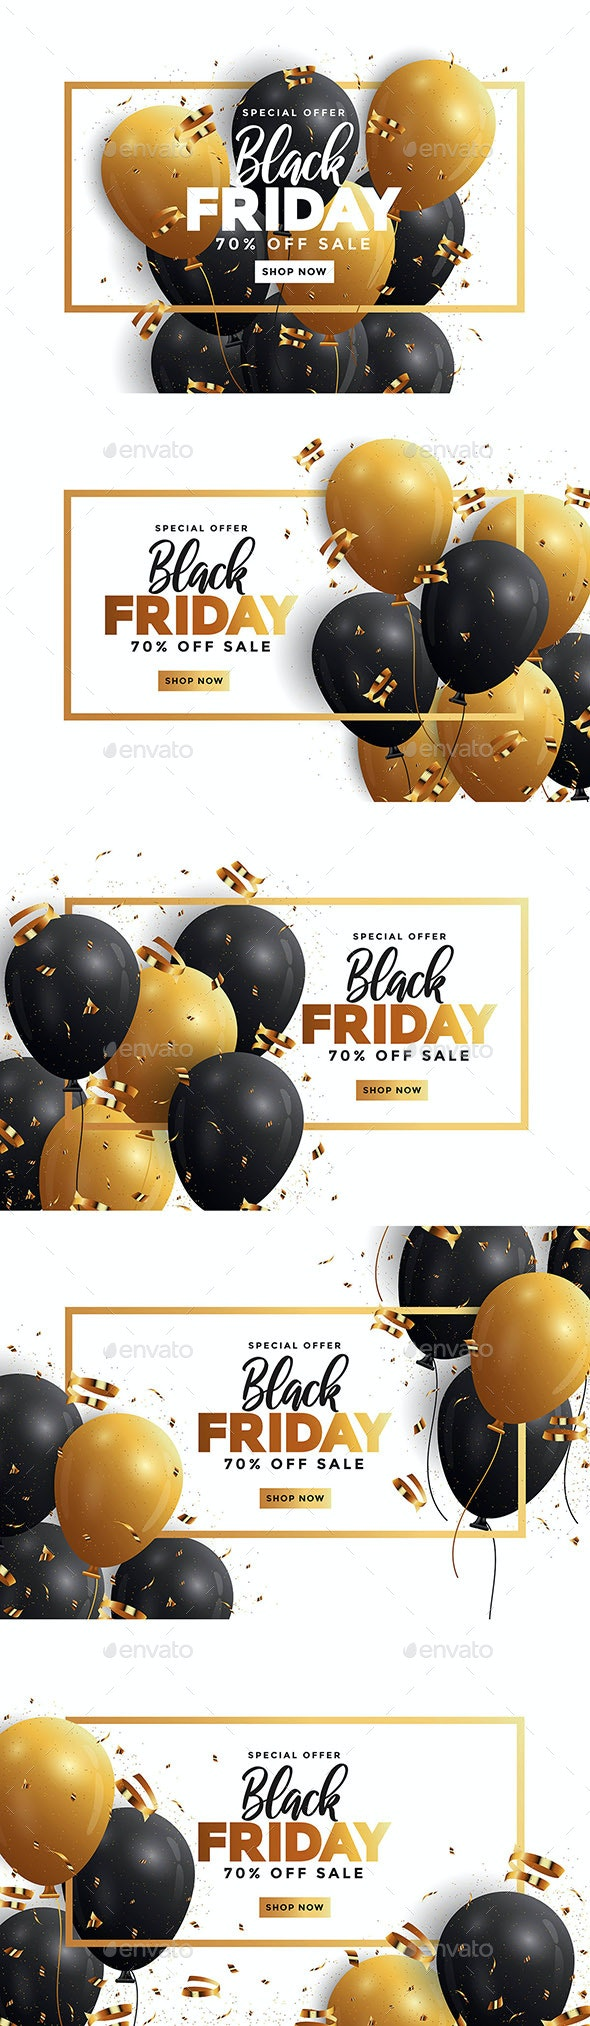 Black Friday Sale Banner with Balloons - Retail Commercial / Shopping